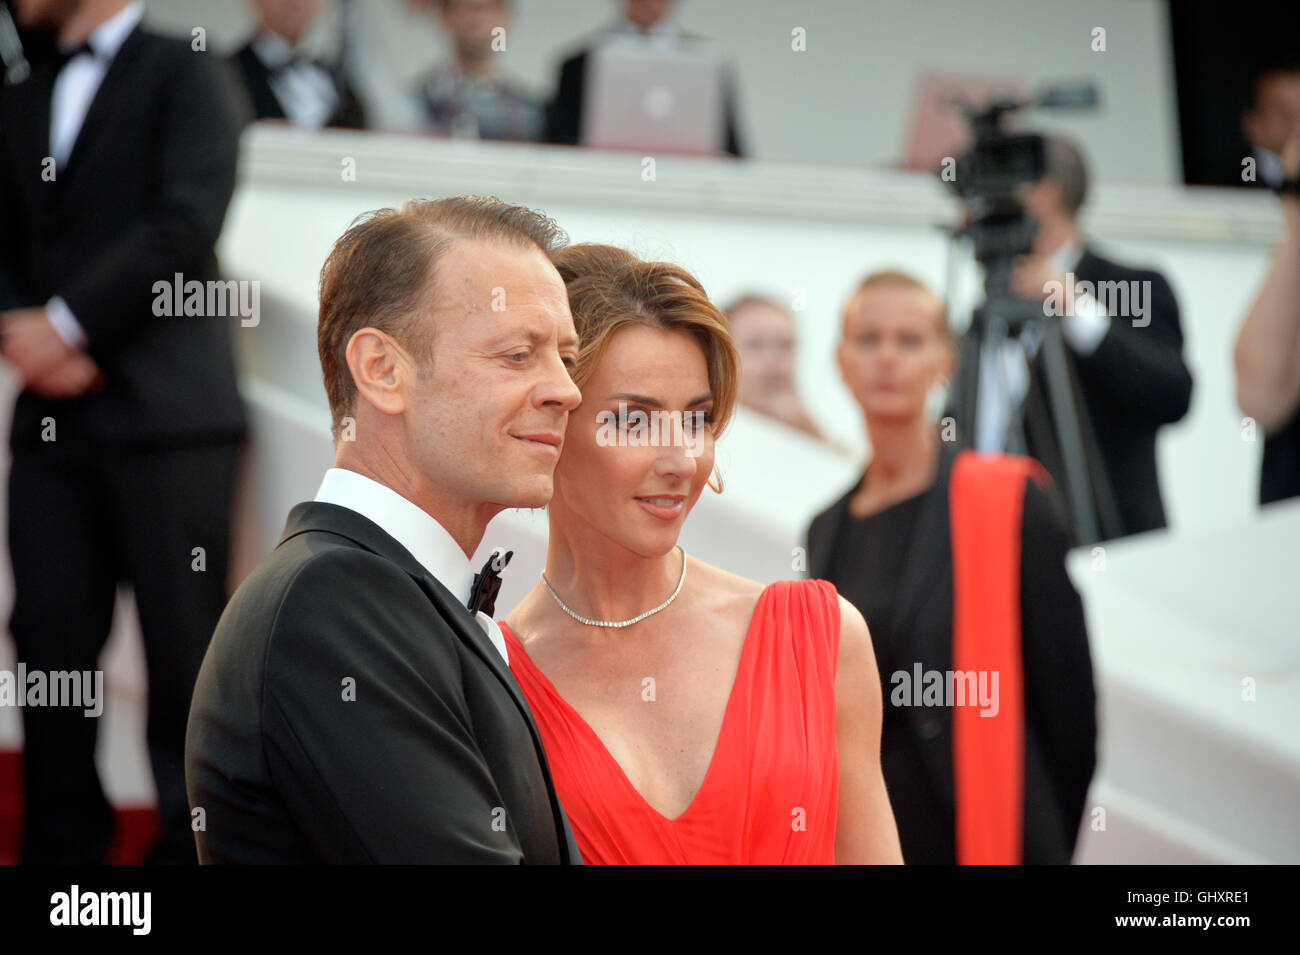 69th cannes film festival rocco siffredi and rozsa tassi walking up stock photo 114300537 alamy. Black Bedroom Furniture Sets. Home Design Ideas